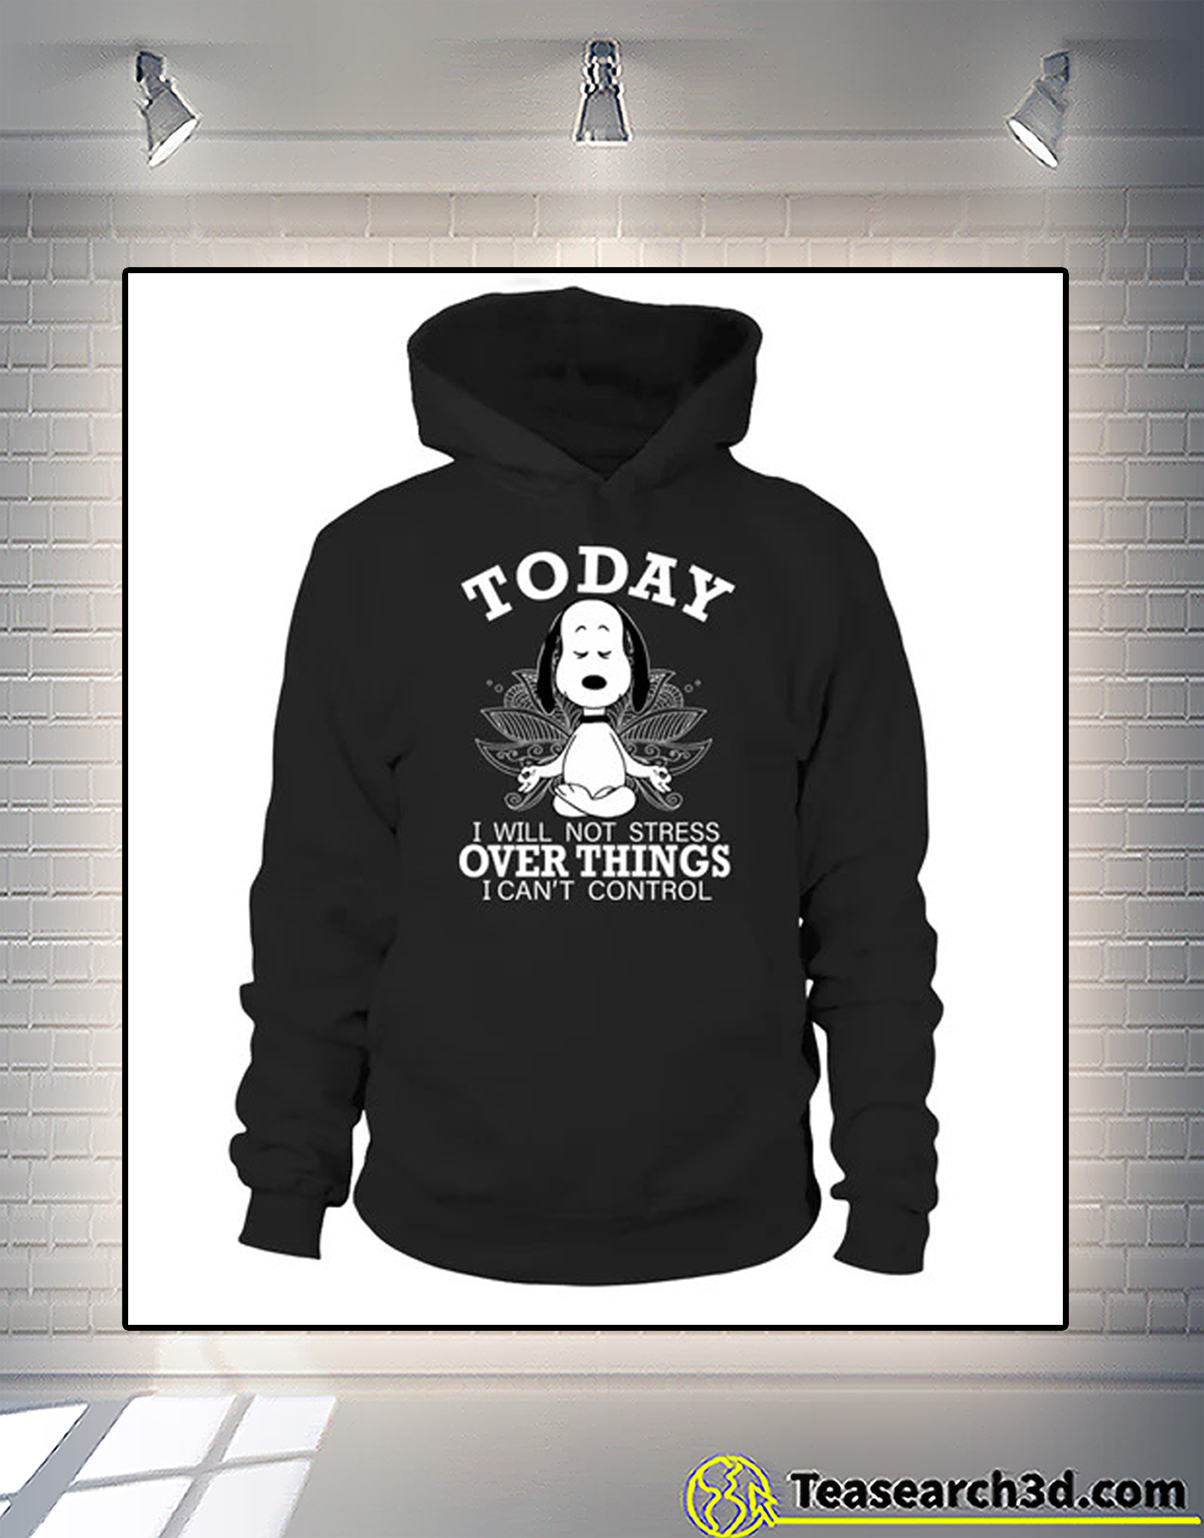 Snoopy today I will not stress over things I can't control hoodie